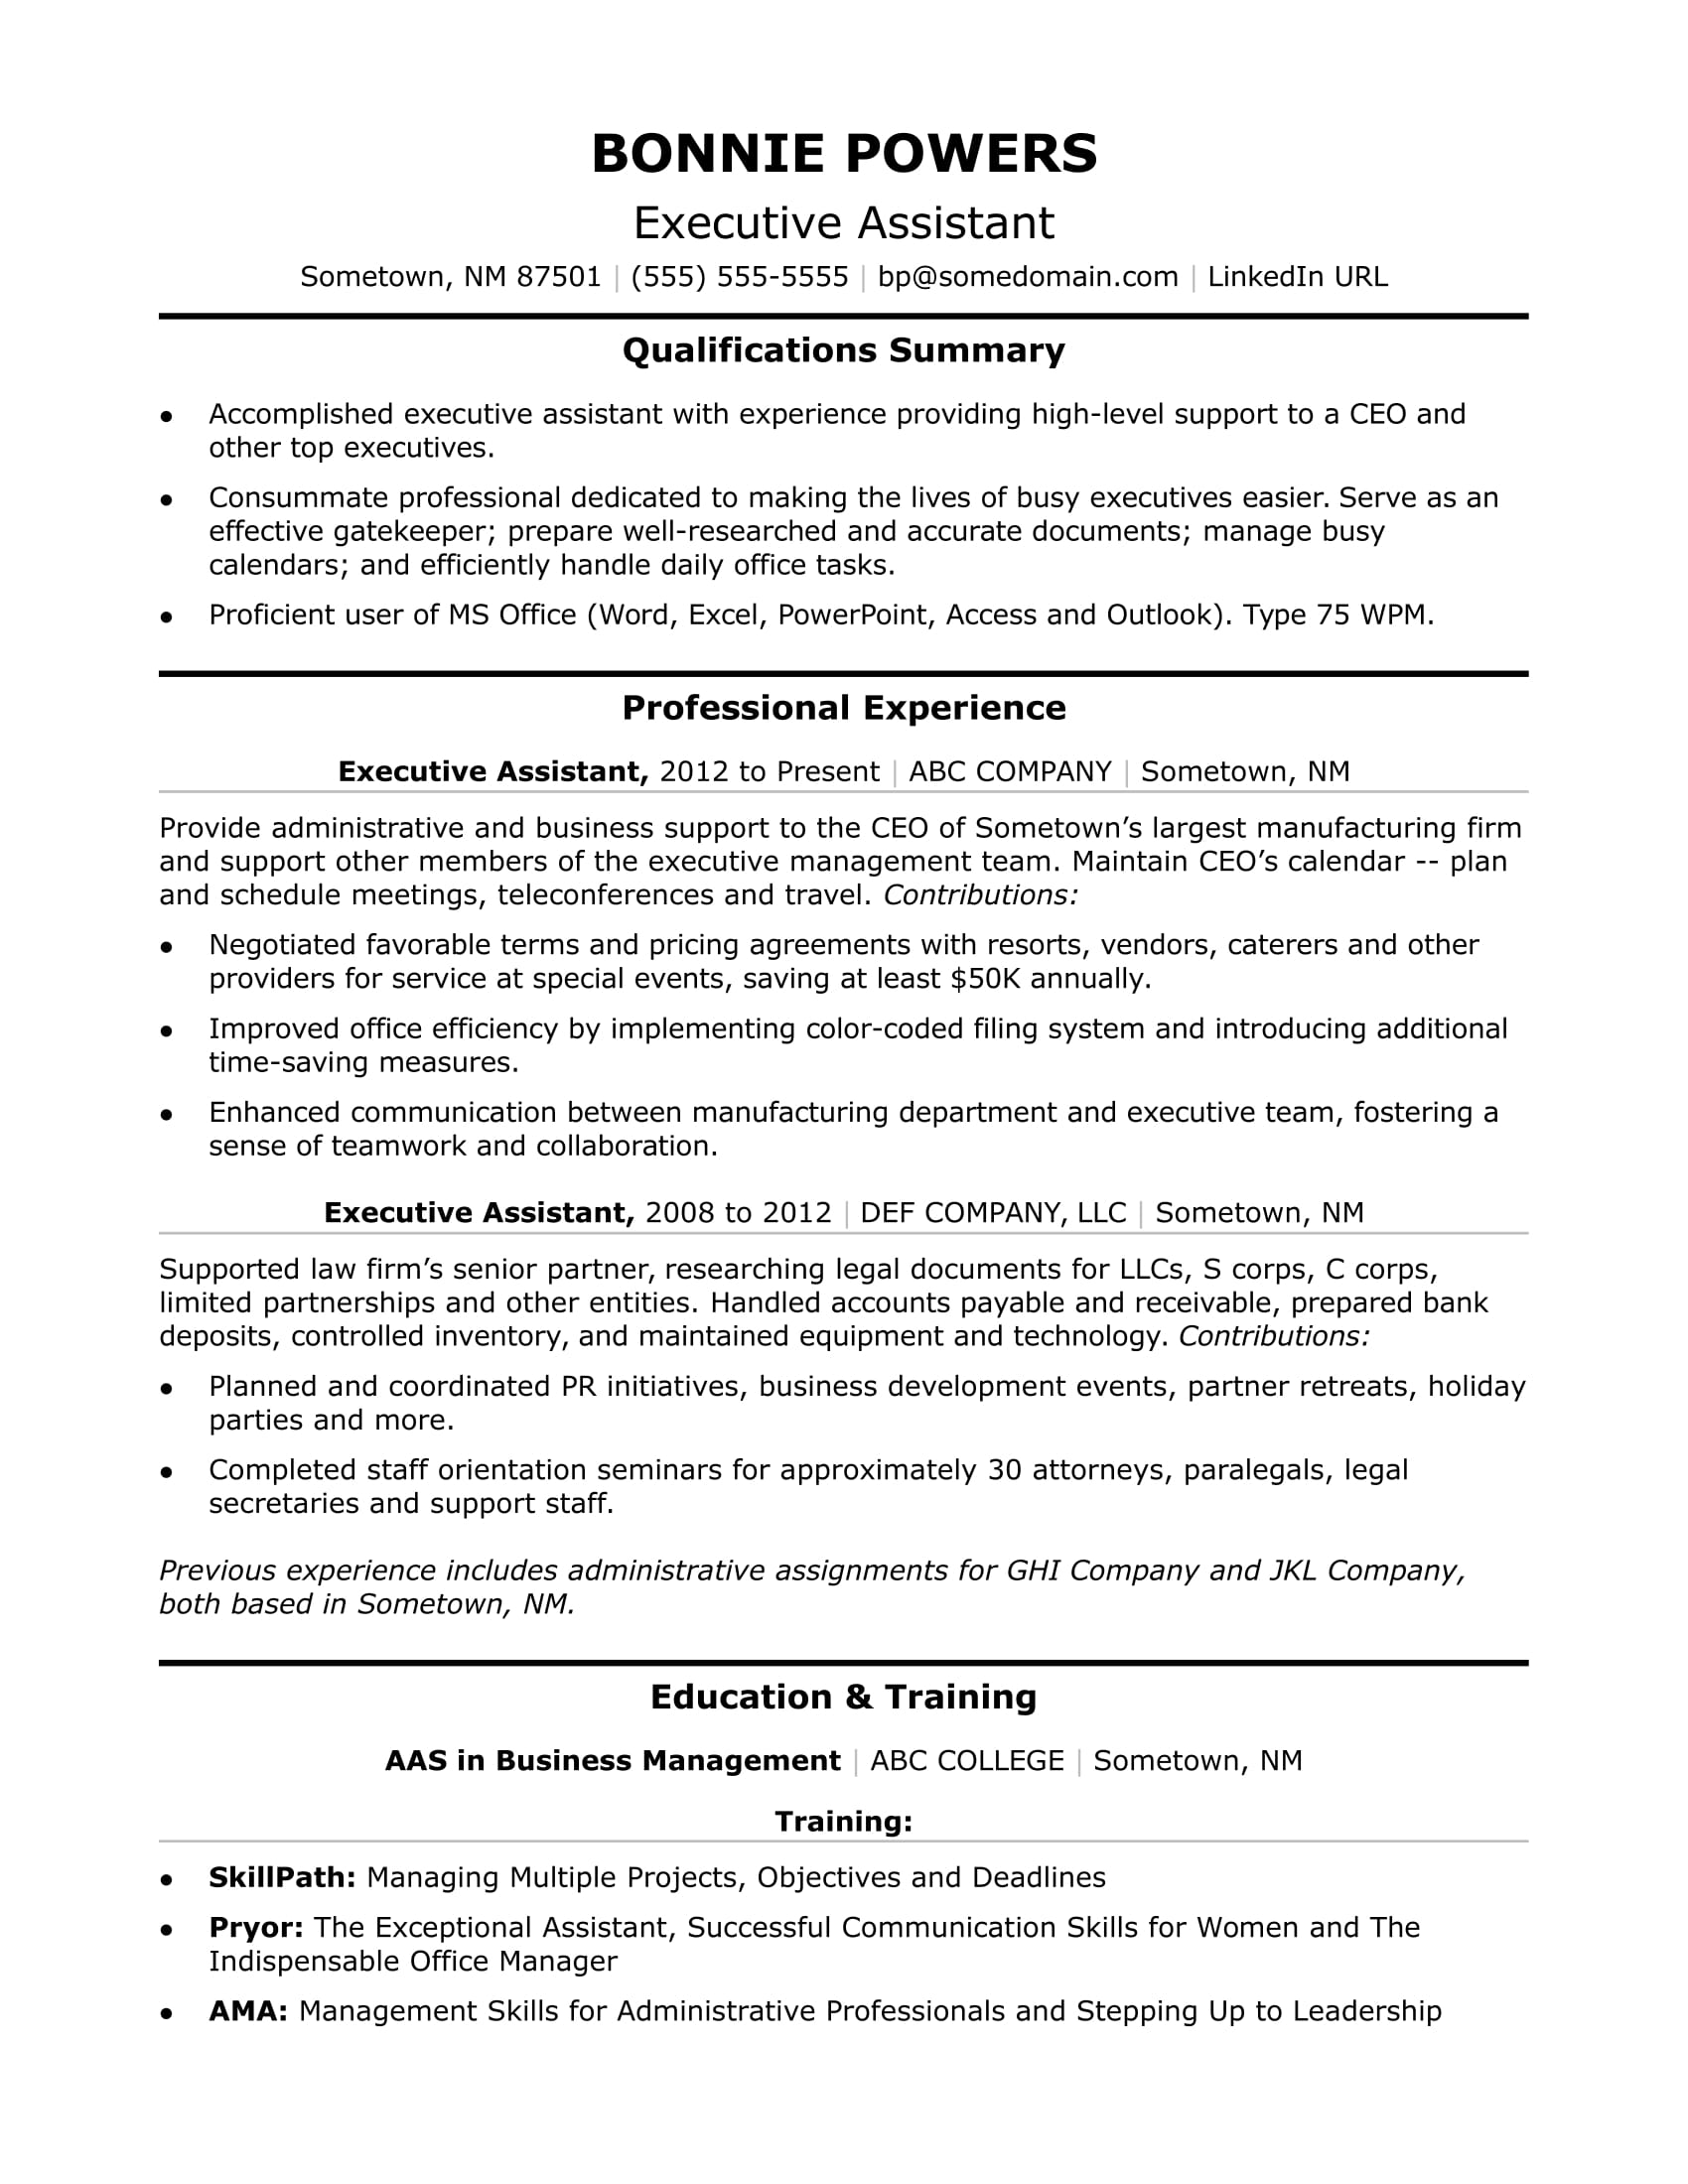 executive administrative assistant resume sample - Administrative Support Resume Samples